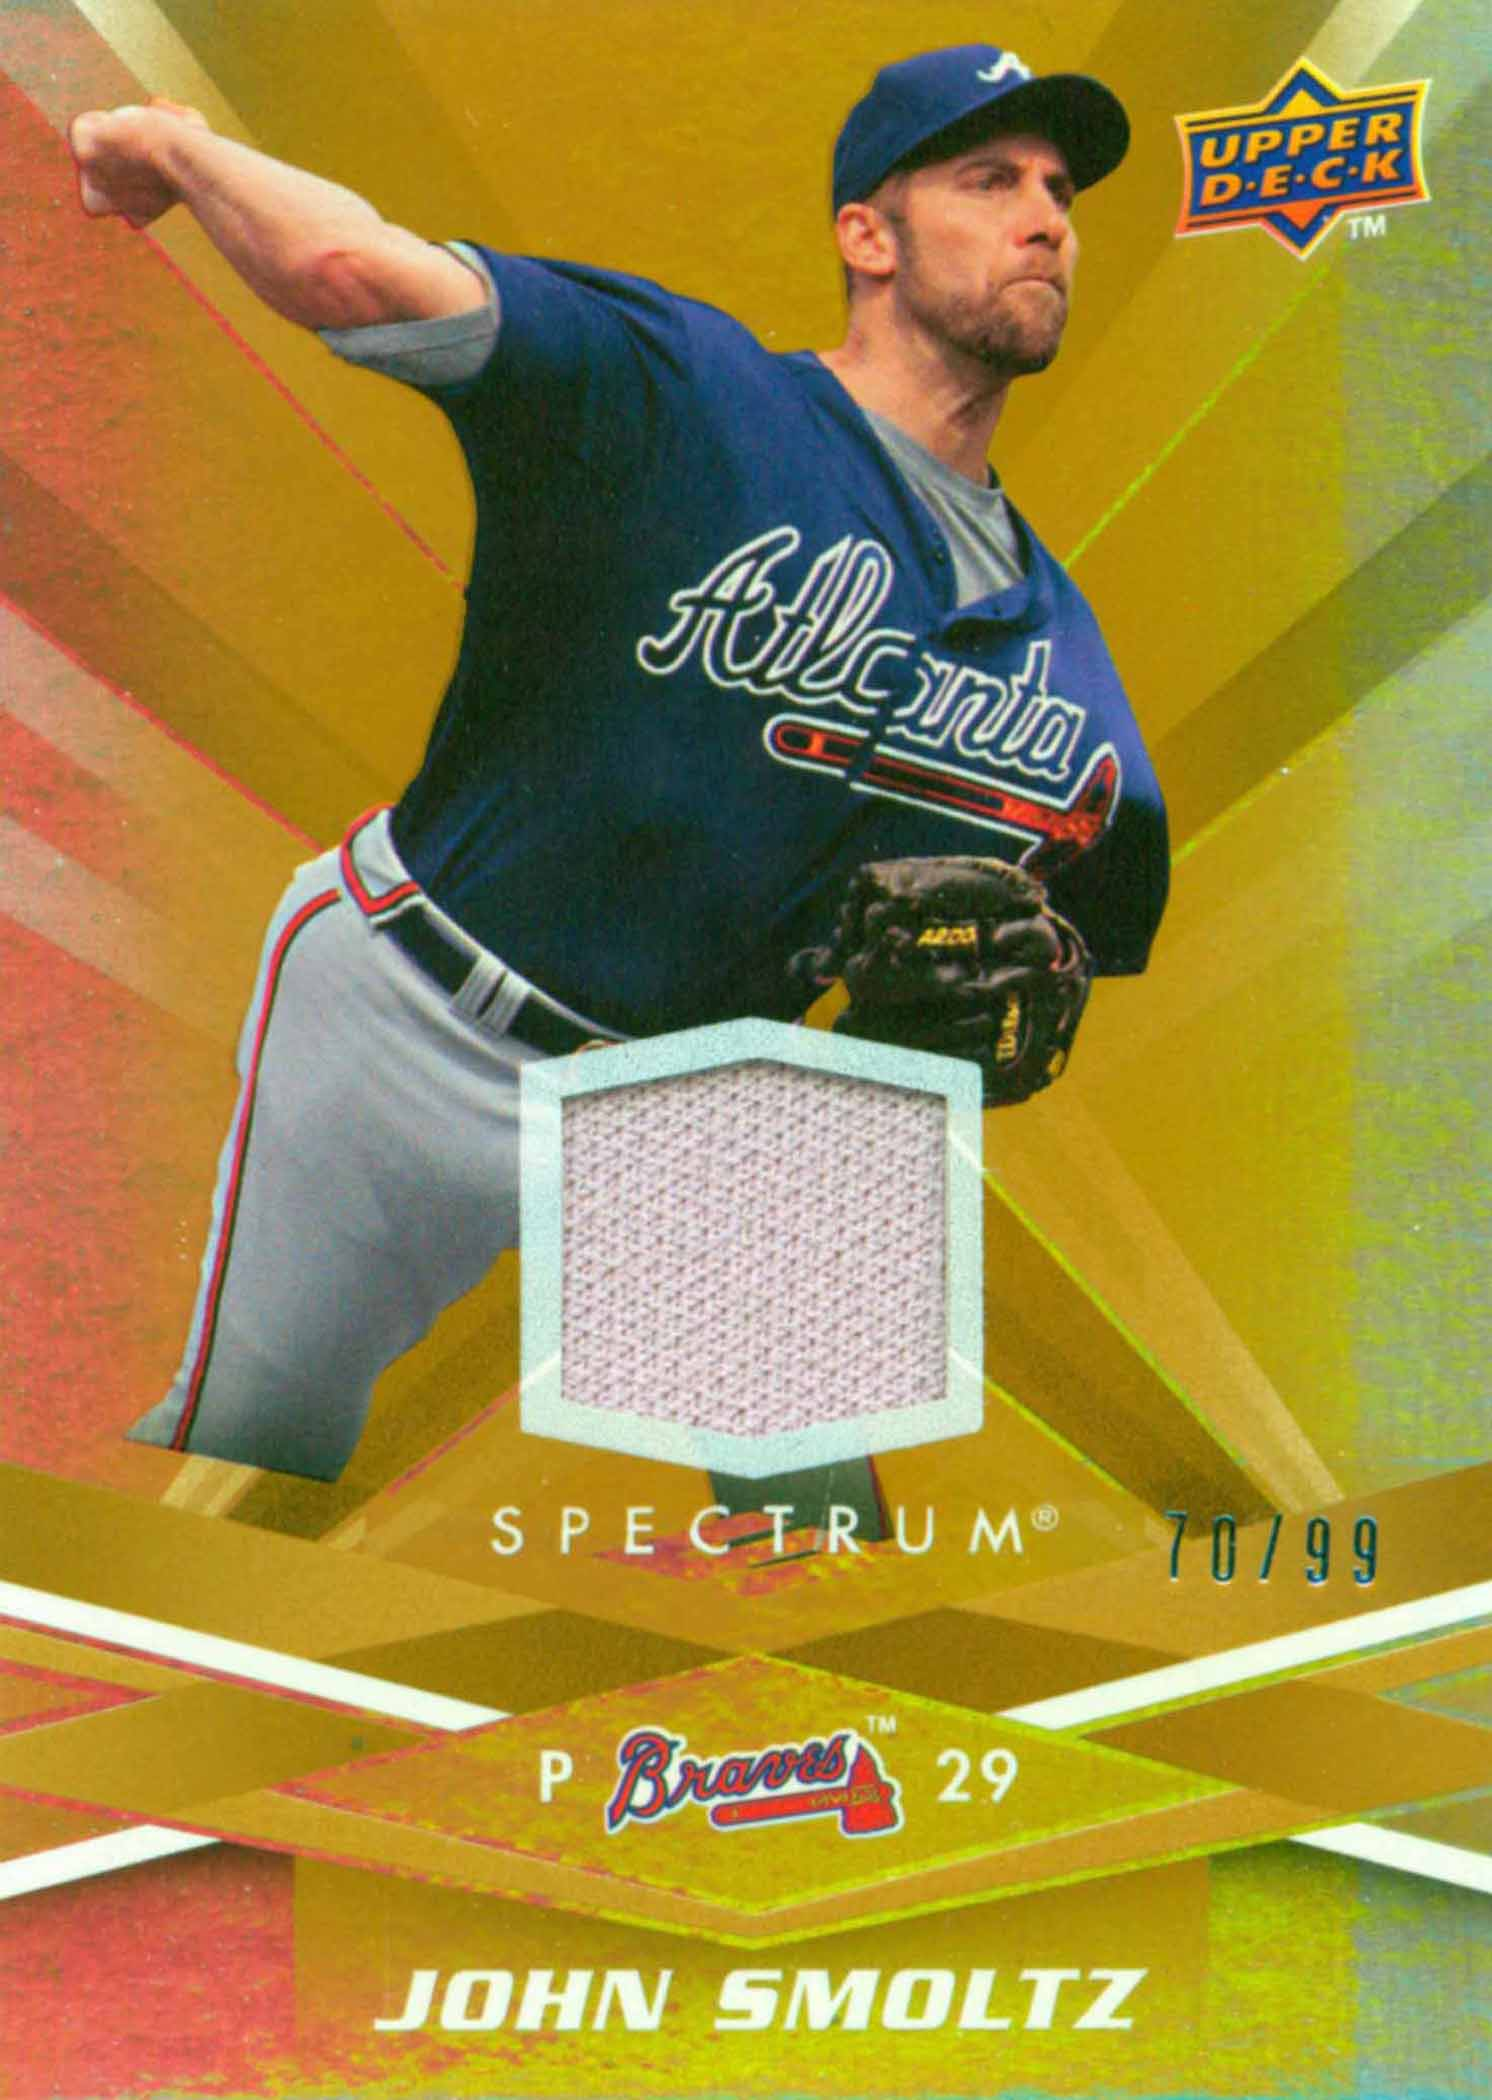 2009 Upper Deck Spectrum Gold Jersey